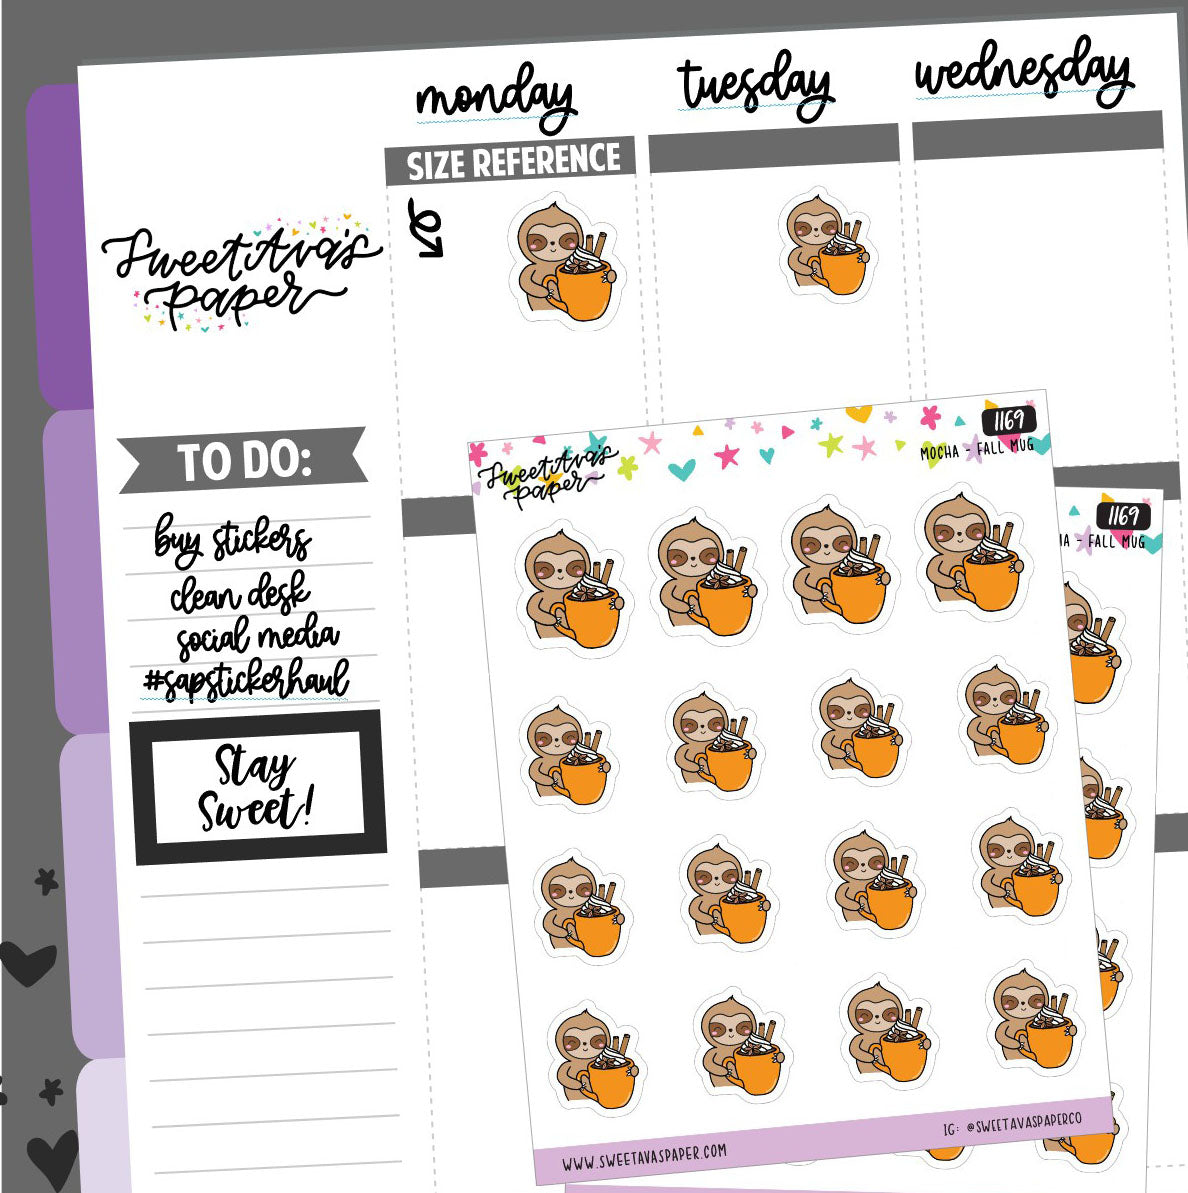 Laptop Planner Stickers - Girl Boss Stickers - Work Stickers - Design Stickers - Doodle Planner Stickers - Character Sticker - 1169